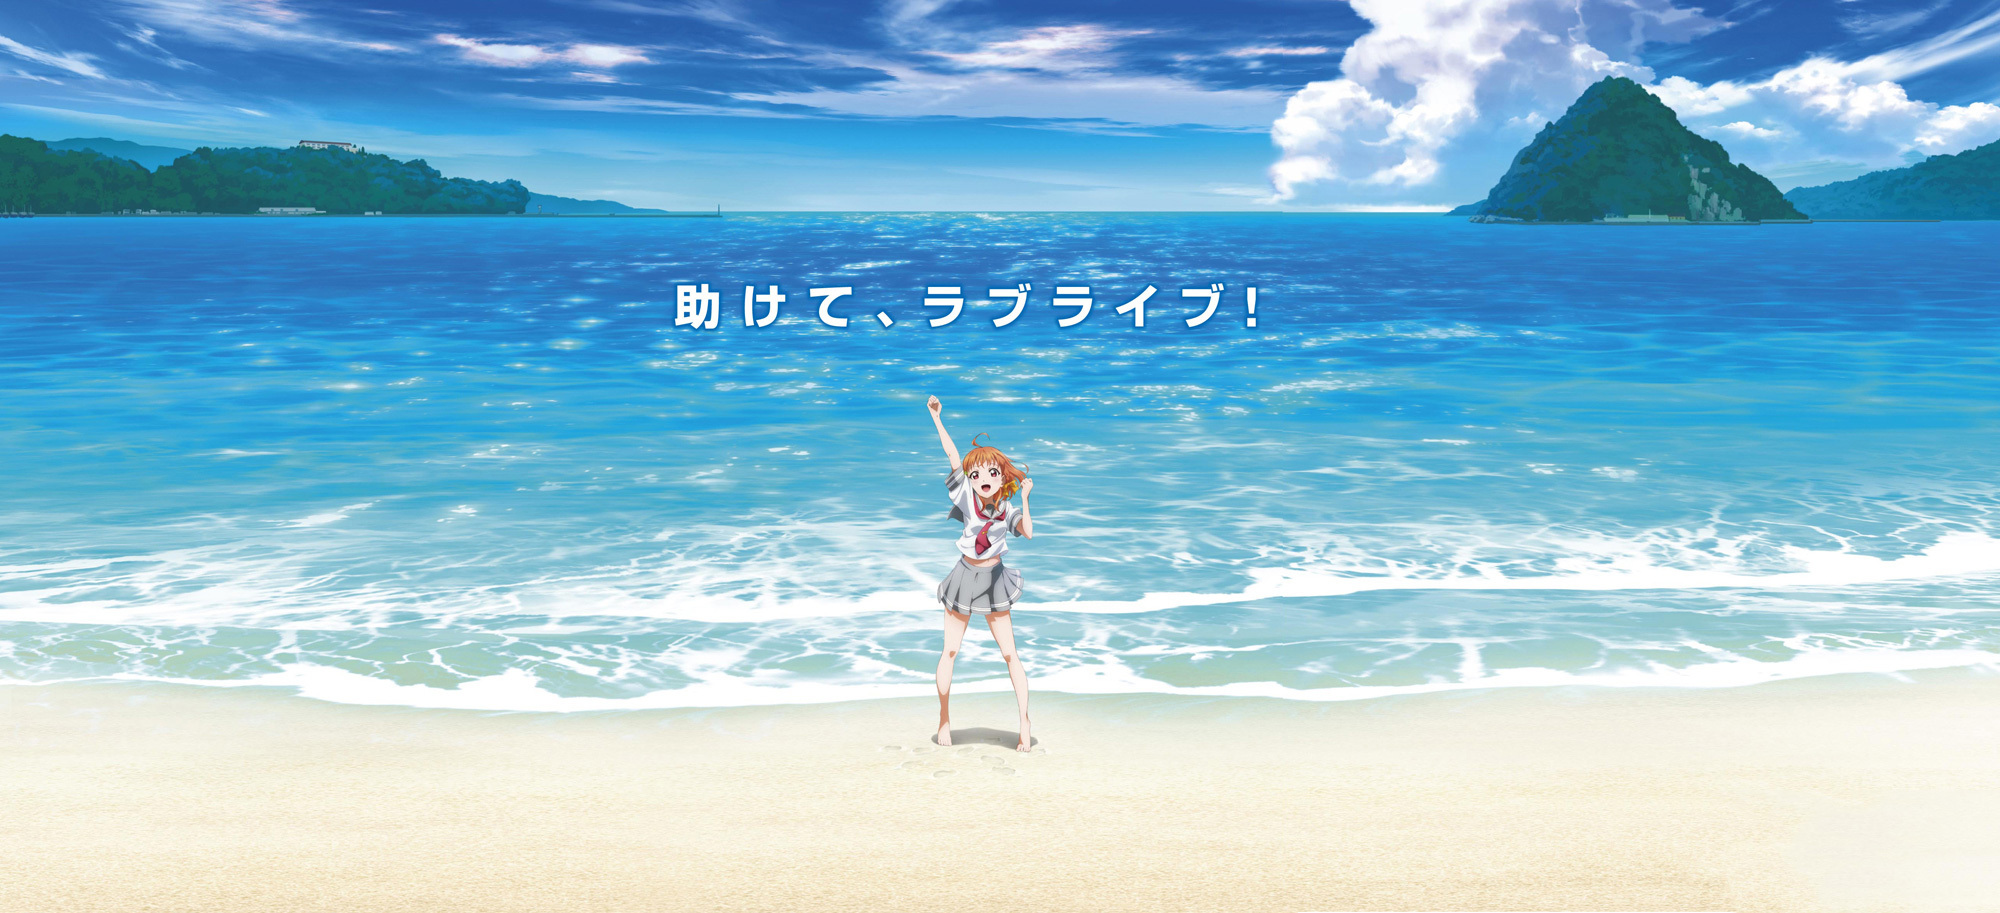 Love-Live-Sunshine-Announcement-Image